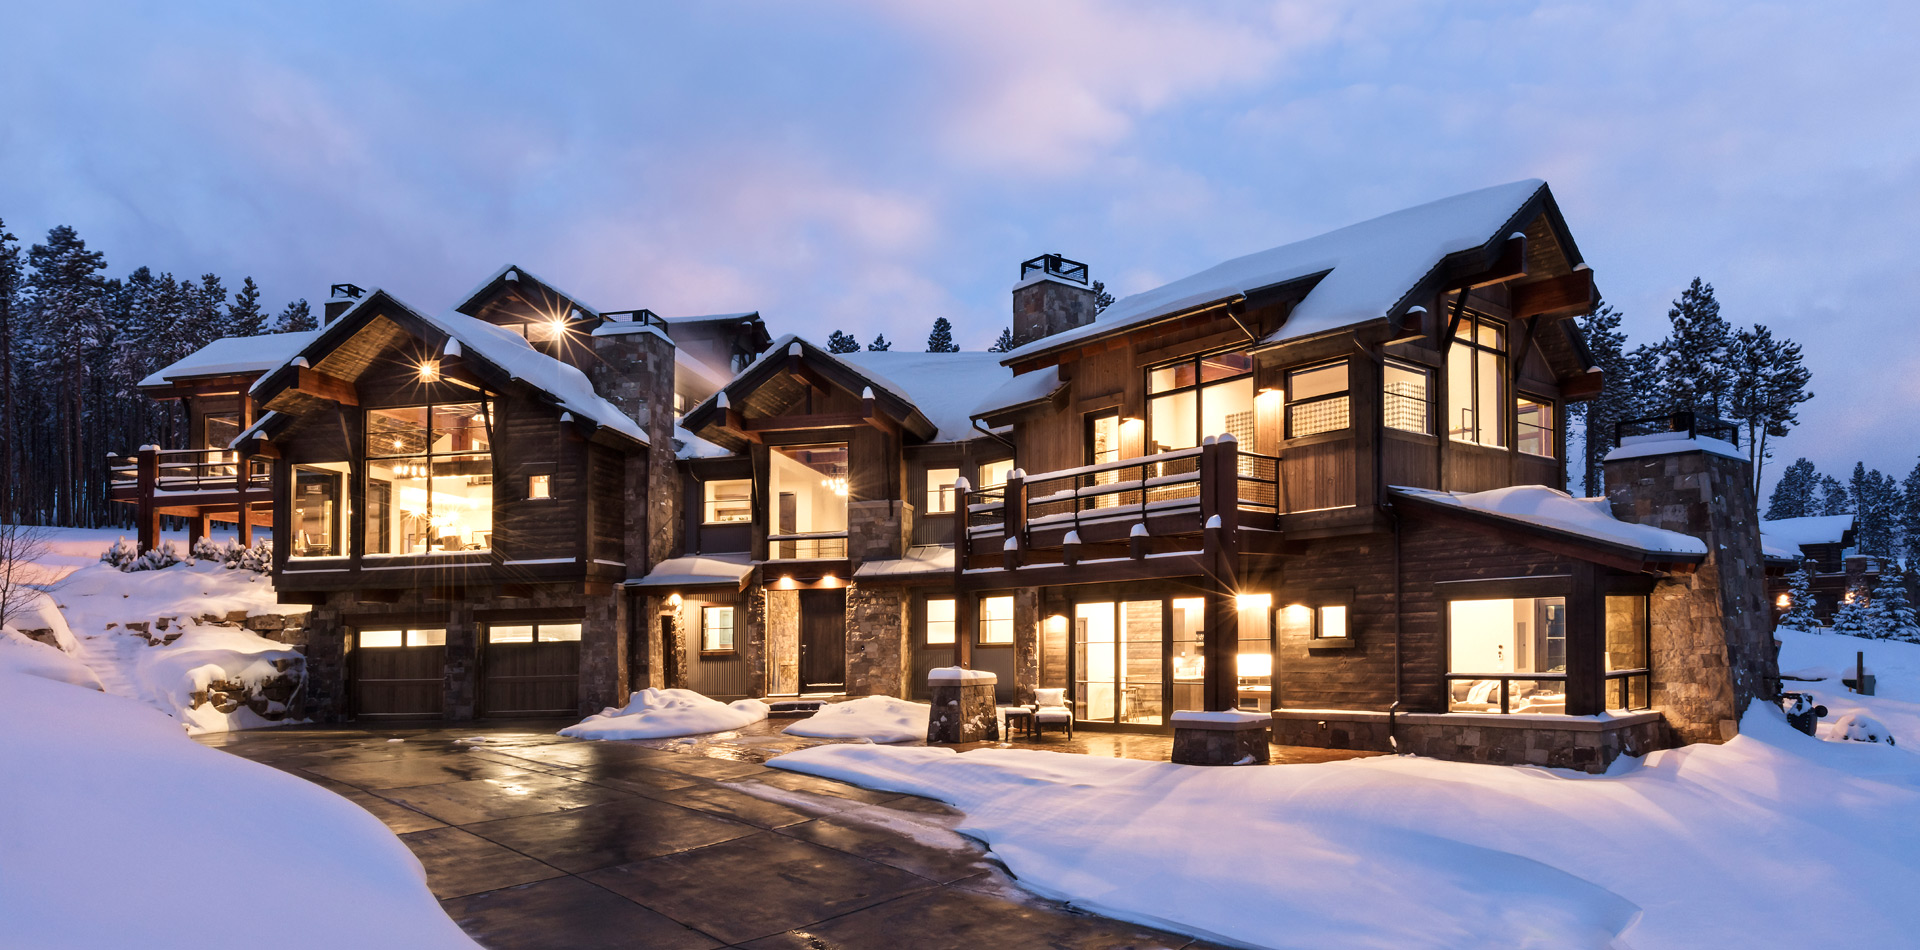 Luxury Mountain home in Breckenridge backing onto Breckenridge Ski Resort